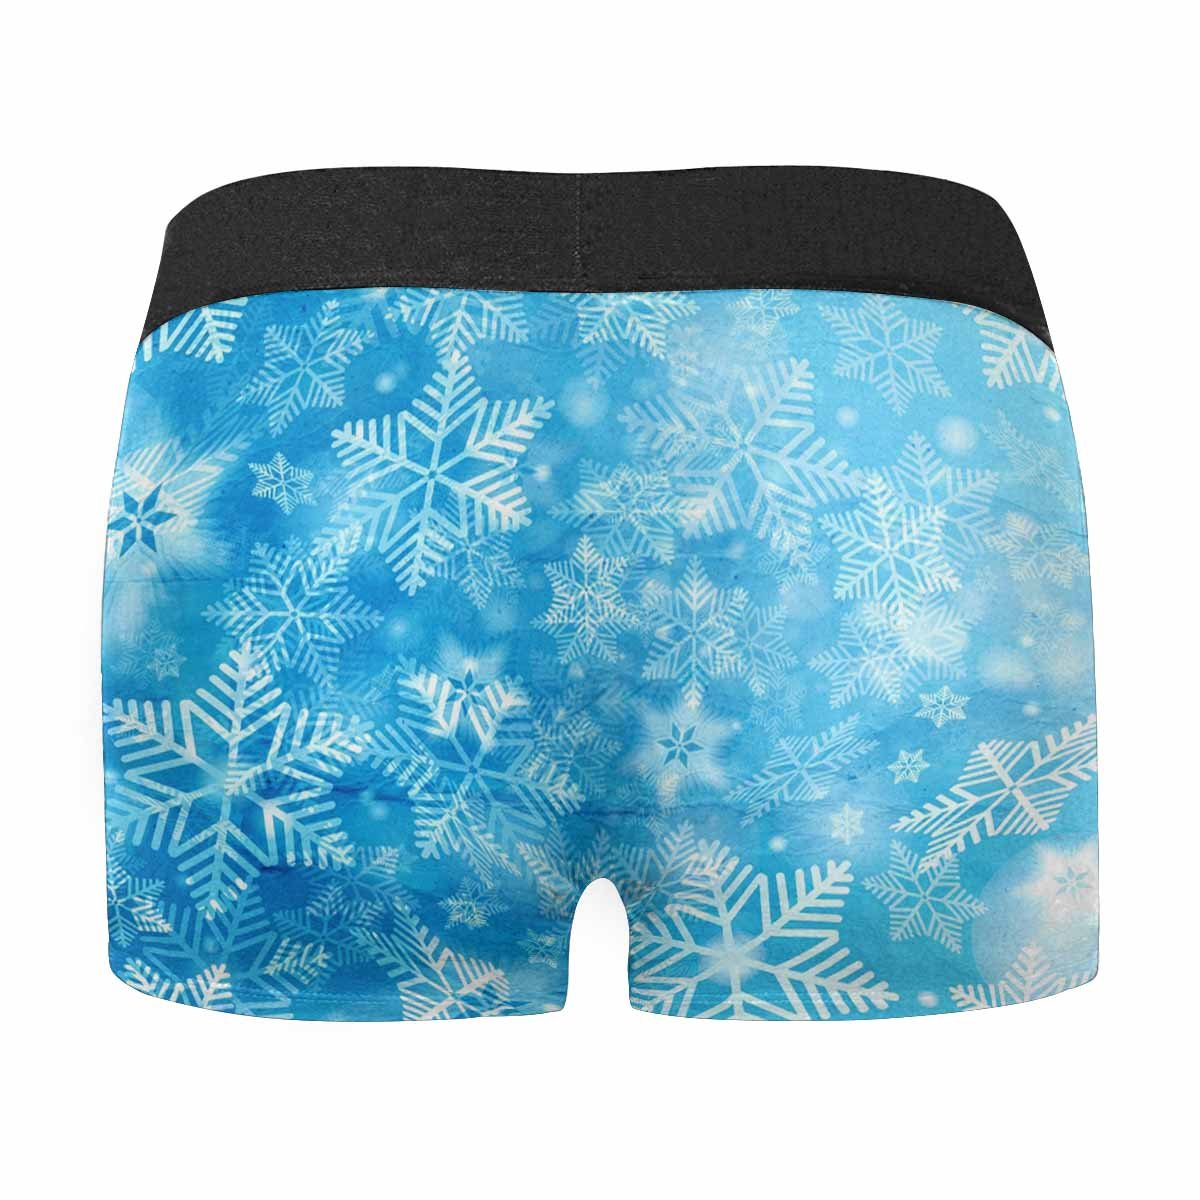 INTERESTPRINT Mens All-Over Print Boxer Briefs Watercolor Bright Christmas Background with Snowflakes XS-3XL